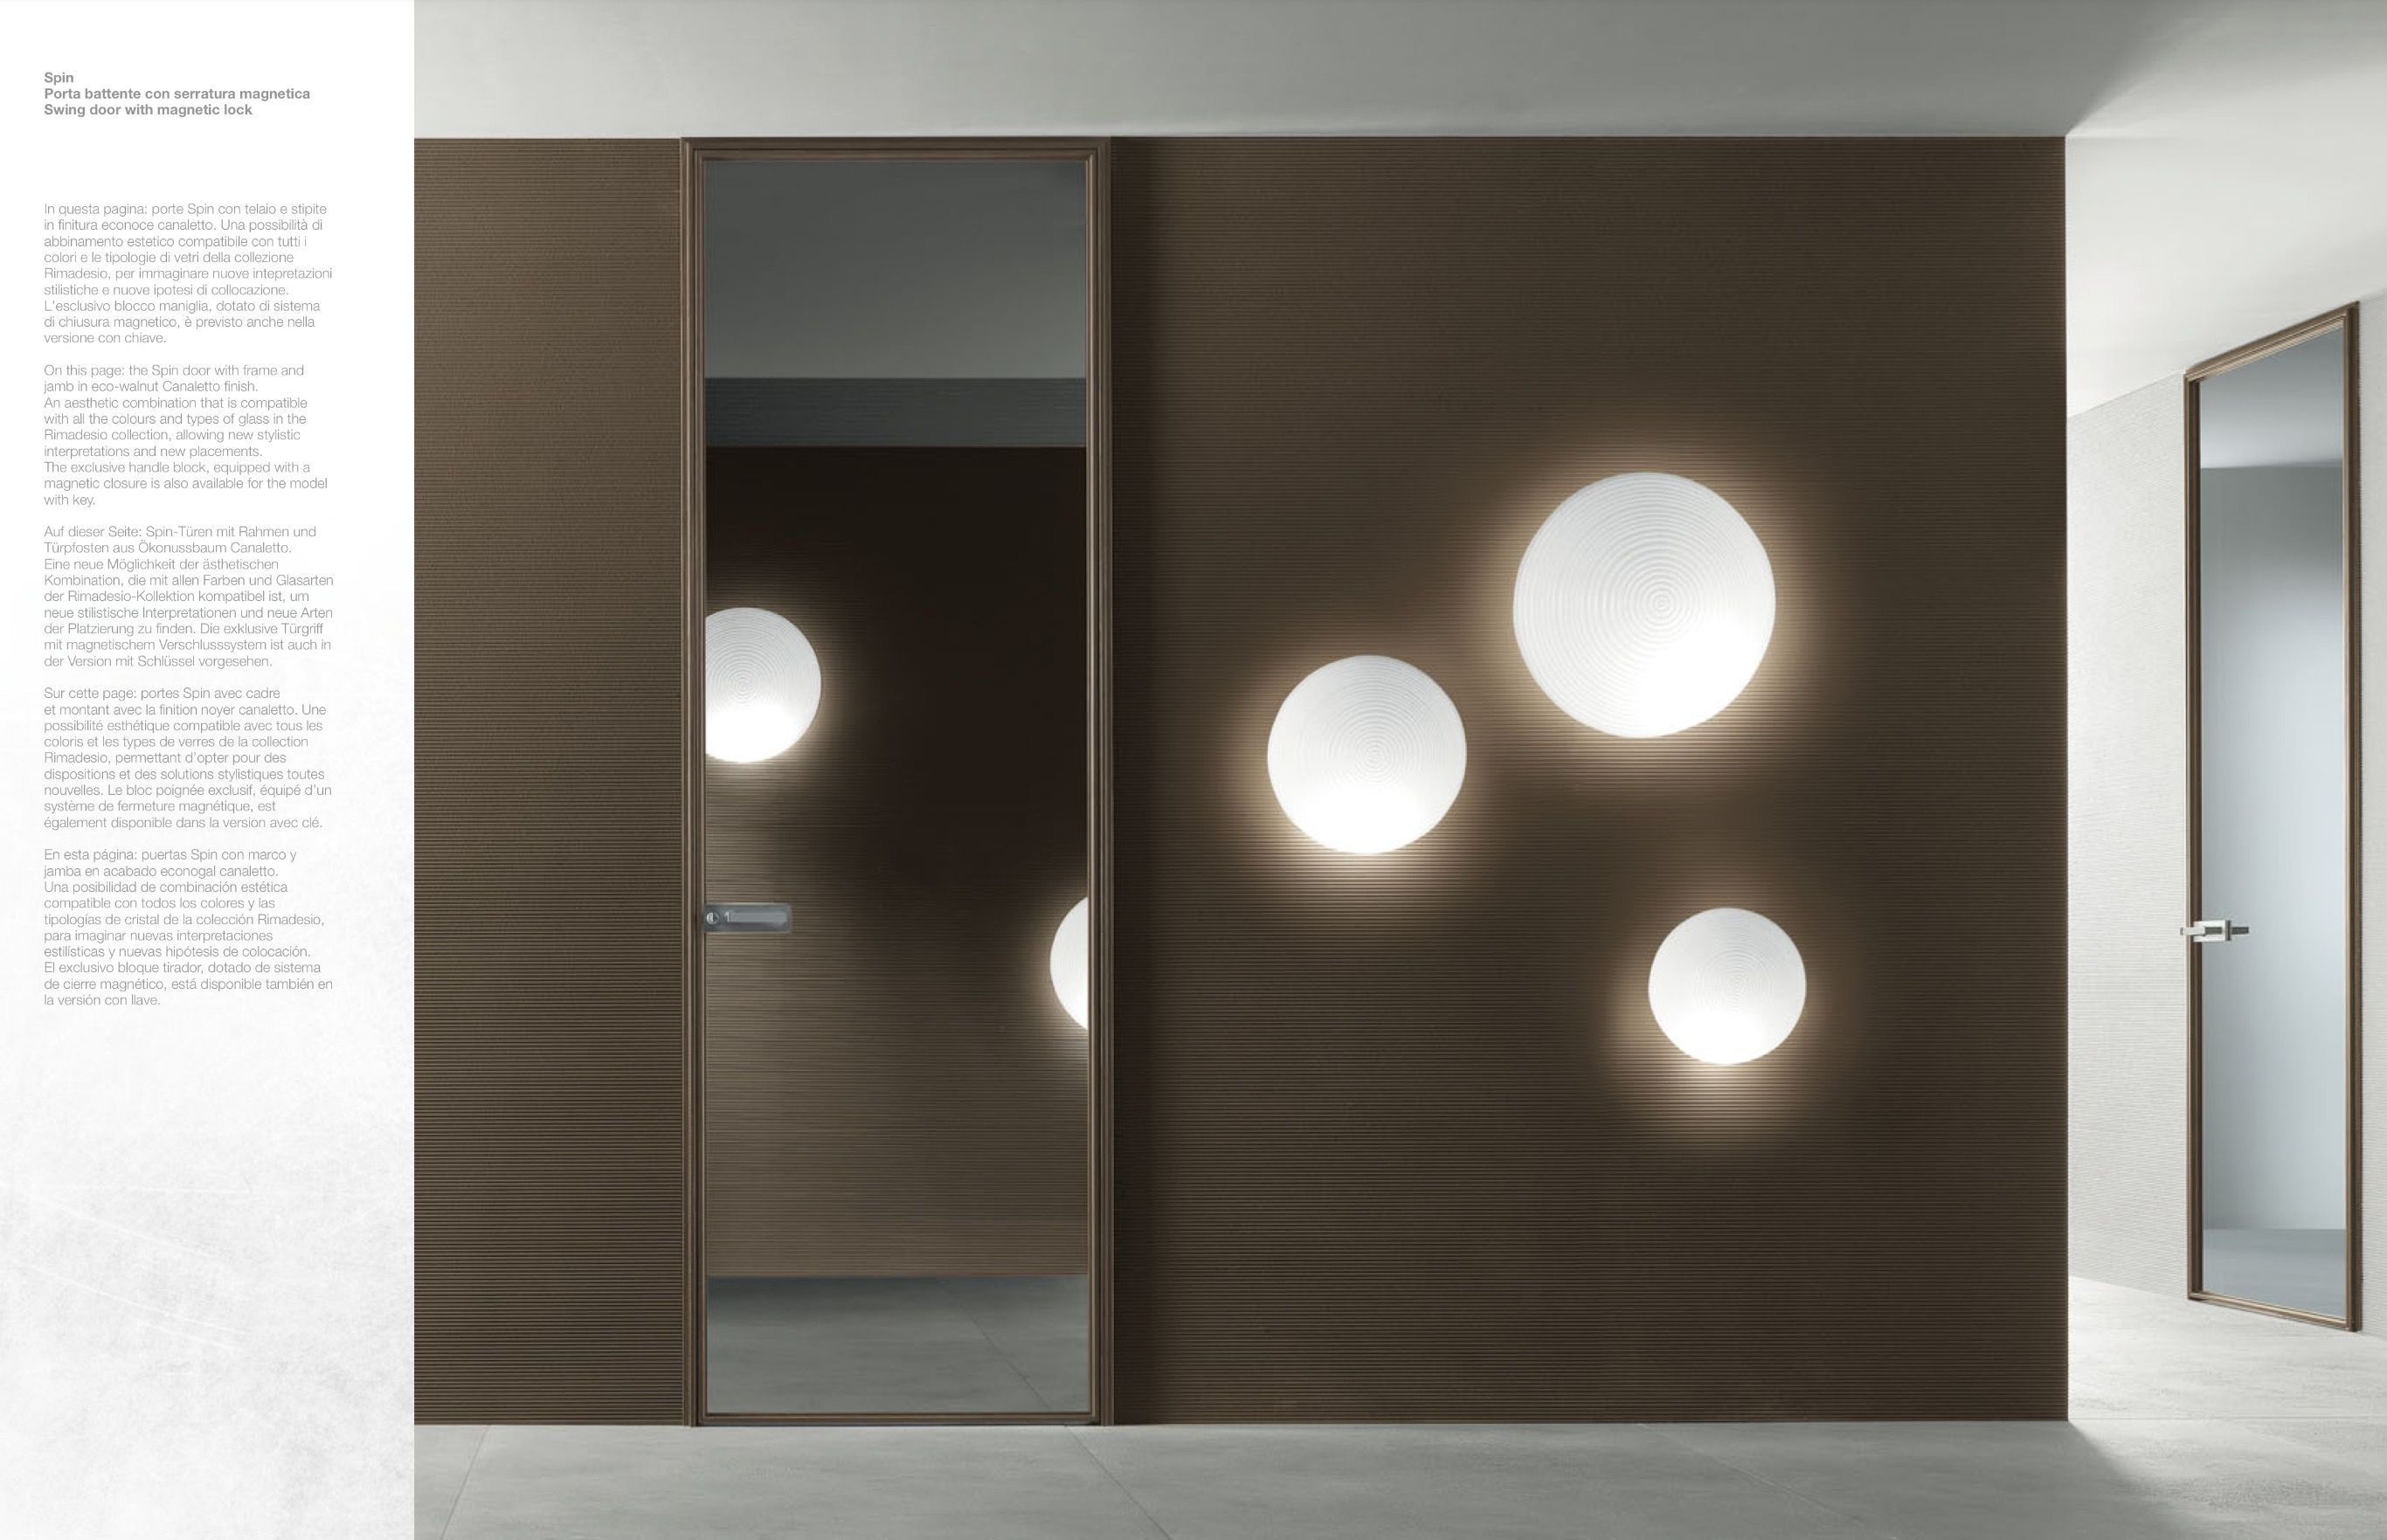 Great Contemporary Interior Glass Doors U2013 Spin By Rimadesio : Modern Interior  Glass Doors Spin By Rimadesio With White Wall And Interior Glass Door S And  Circle ...